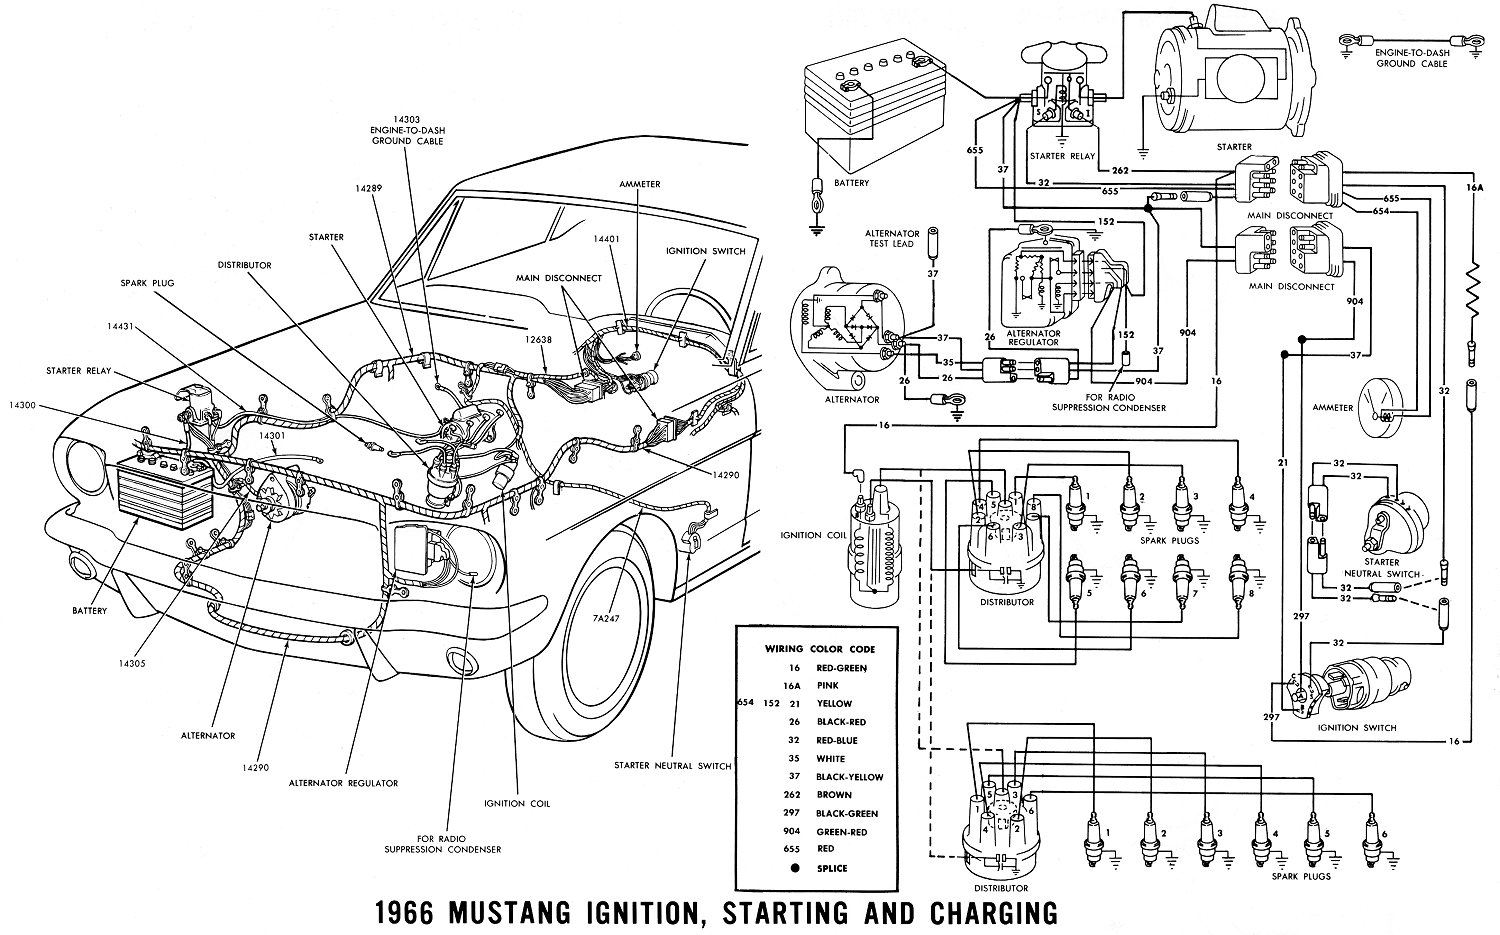 69 Mustang Wiring Diagram on Mercedes Benz Transmission Diagram